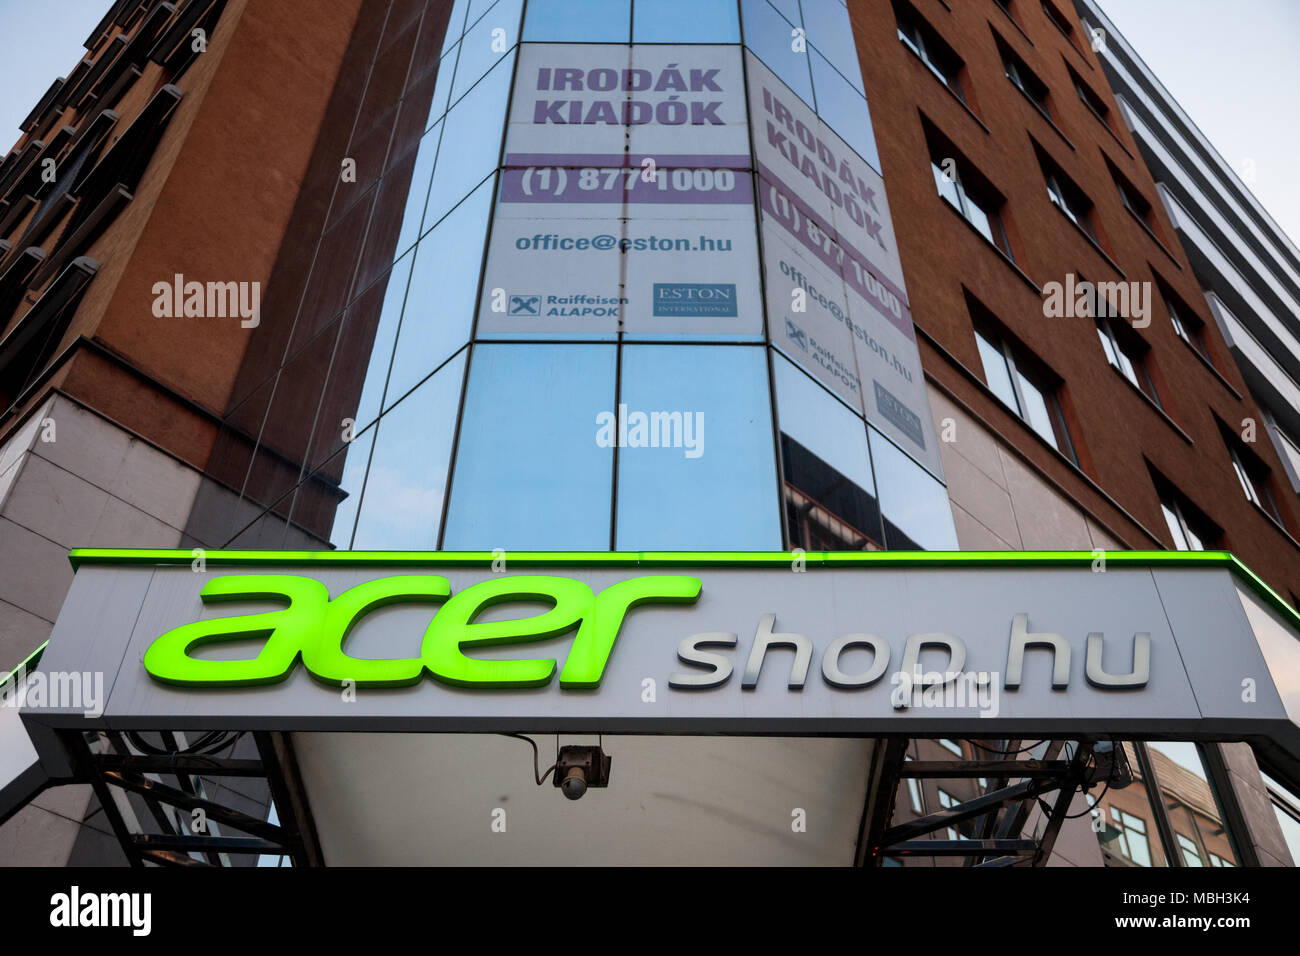 BUDAPEST, HUNGARY - APRIL 6, 2018: Acer logo on their main shop for Hungary during the evening. Acer is one of the main Computer manufacturers in the  - Stock Image